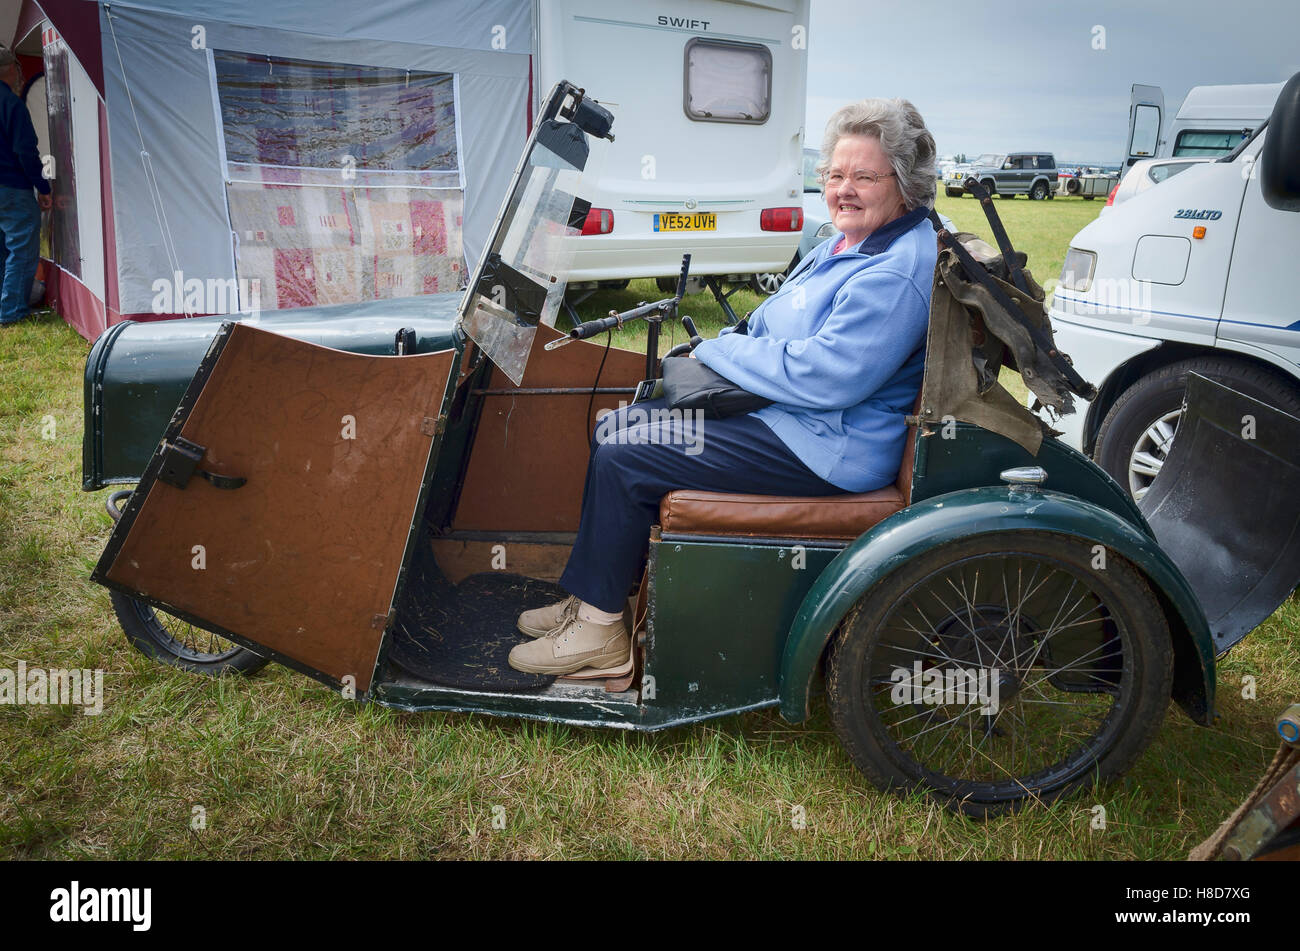 A Rare Harding Powered Invalid Carriage At An English Show With